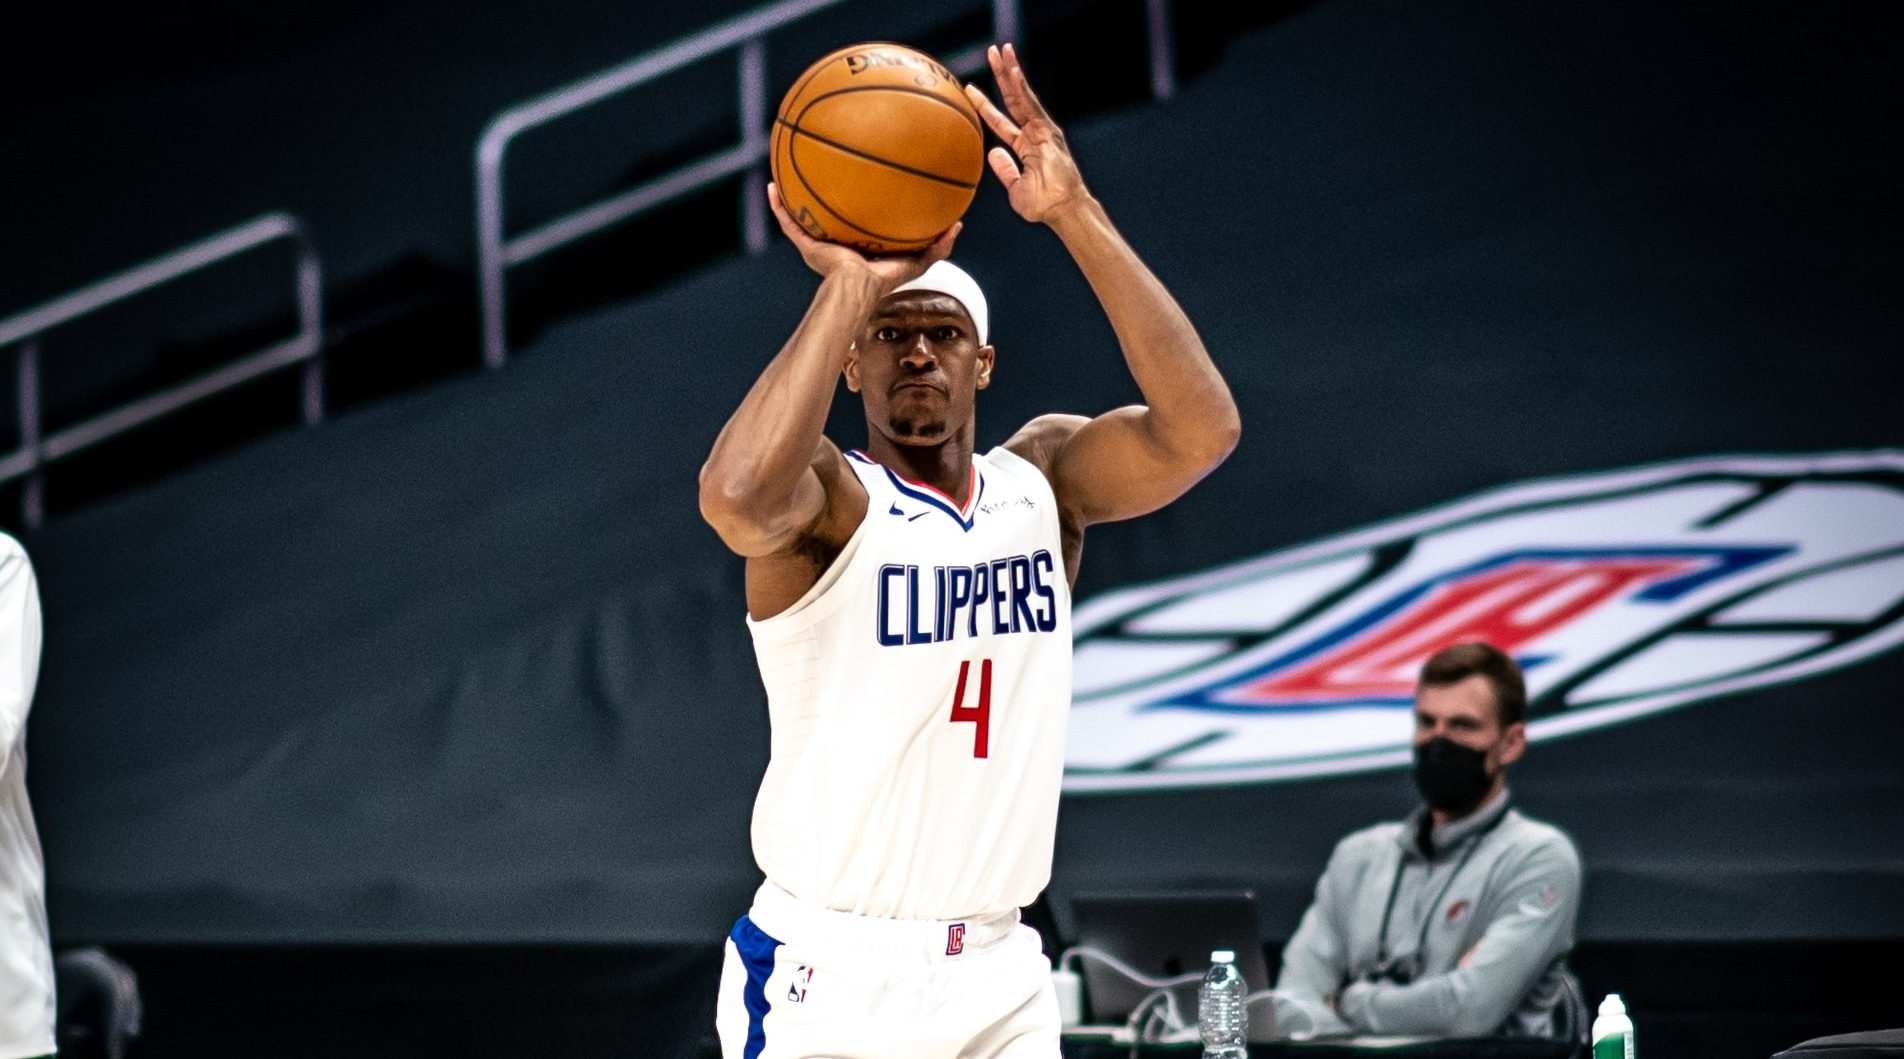 Clippers 2021 Exit Interview: Rajon Rondo